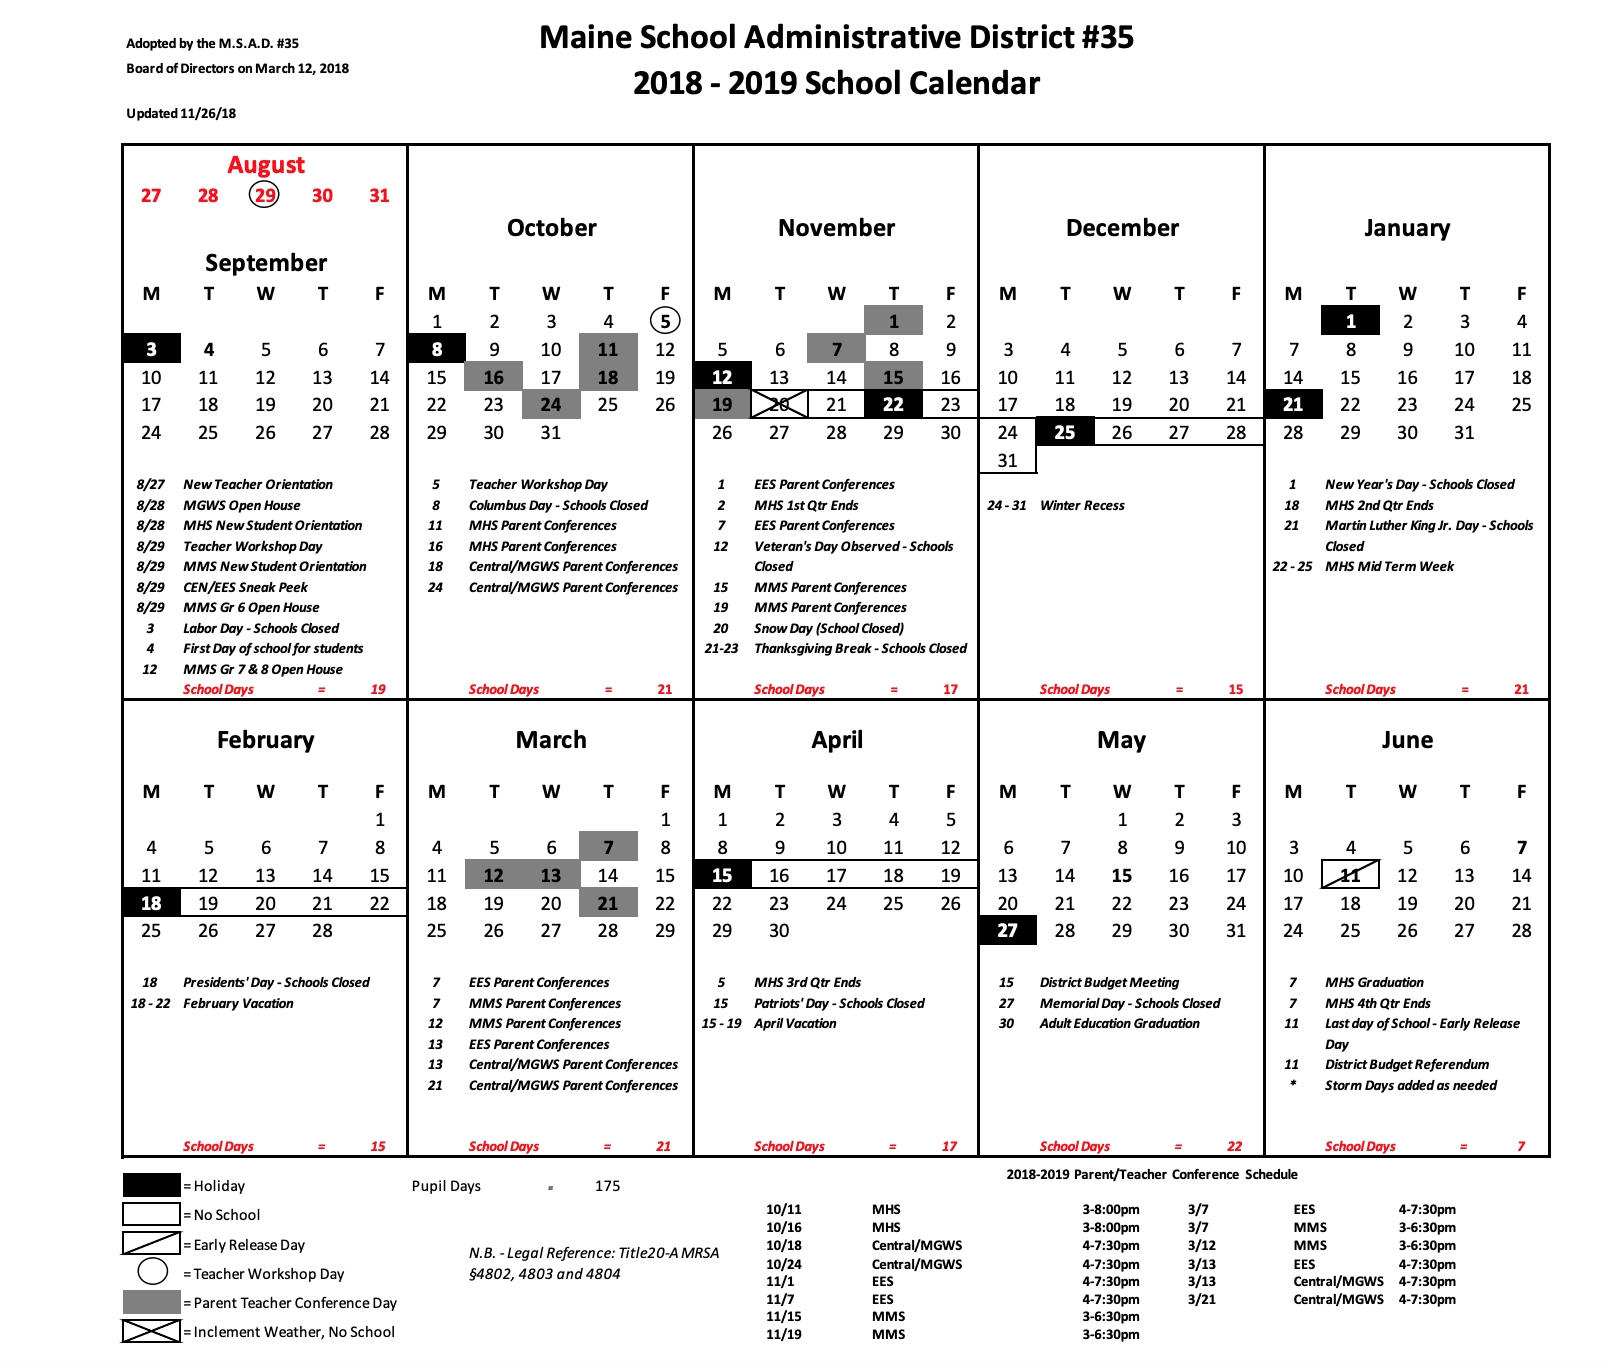 The Updated School Calendar For 2018-2019 That Shows The Snow Day_Msad 1 School Calendar